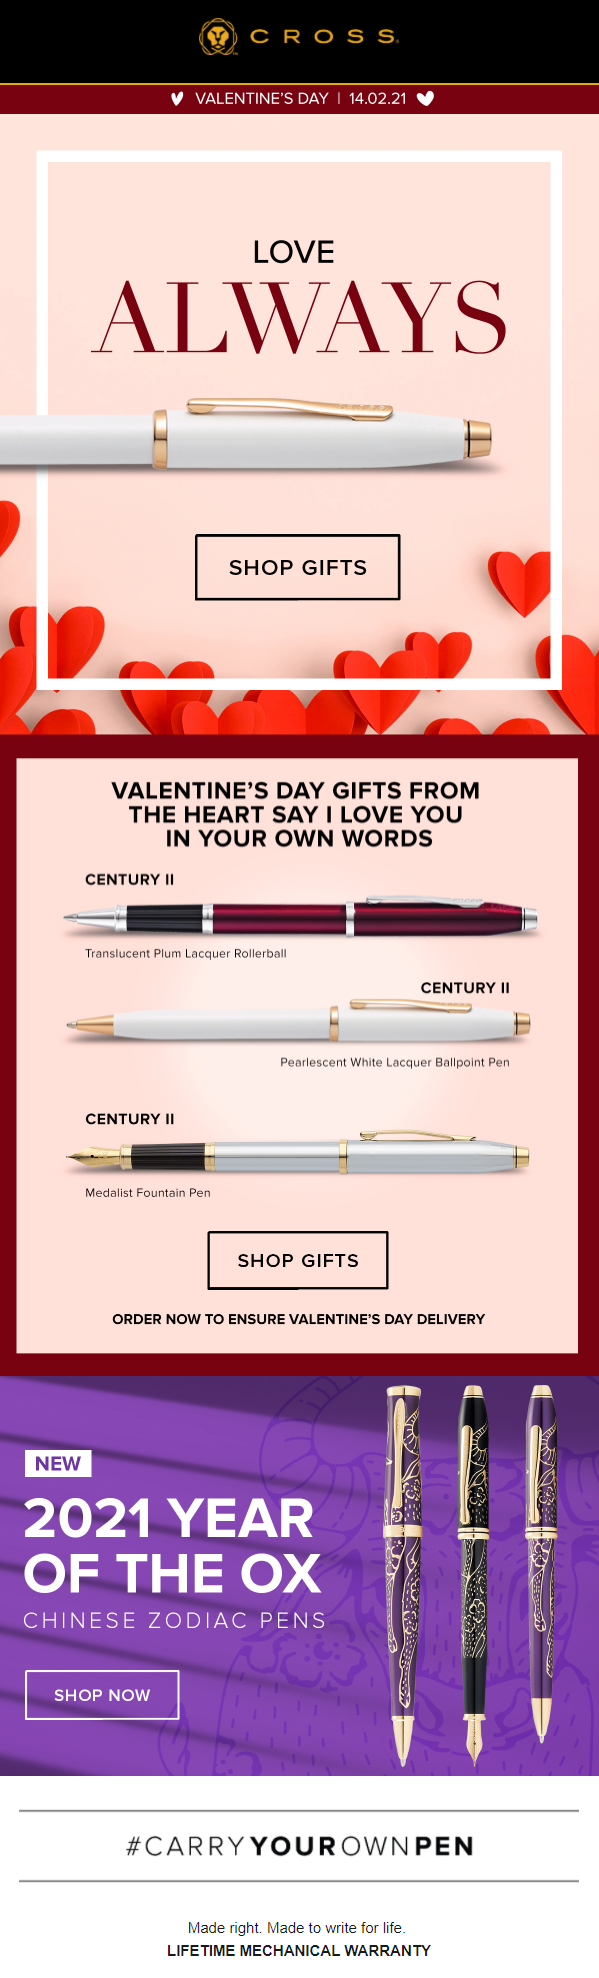 cross-1-gifts-for-your-valentine